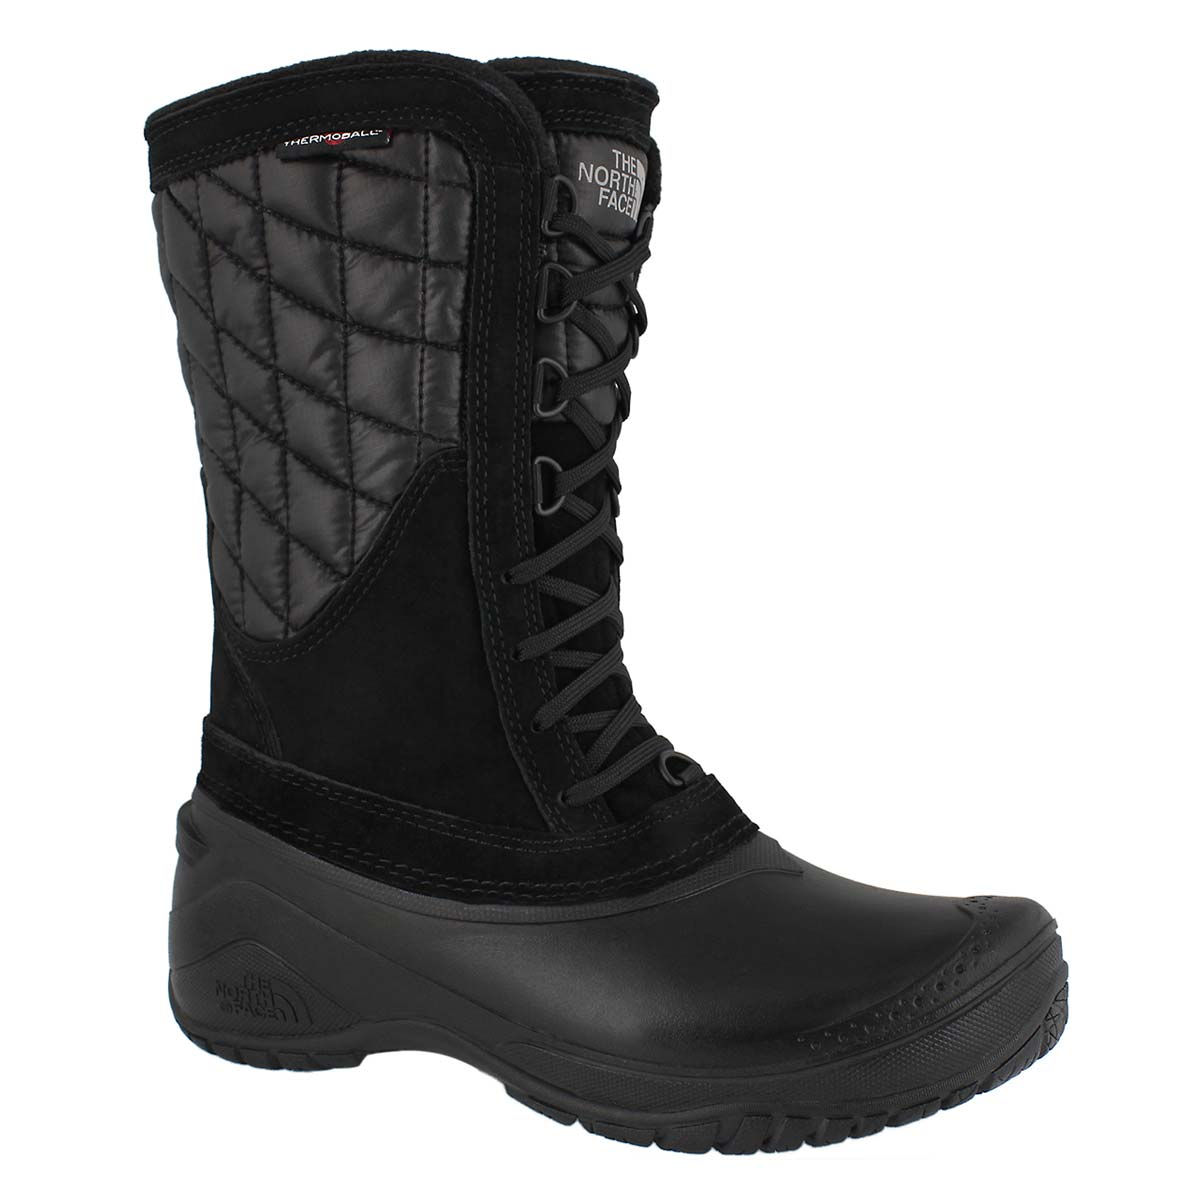 Lds ThermoBallUtilityMid blk/blk wp boot